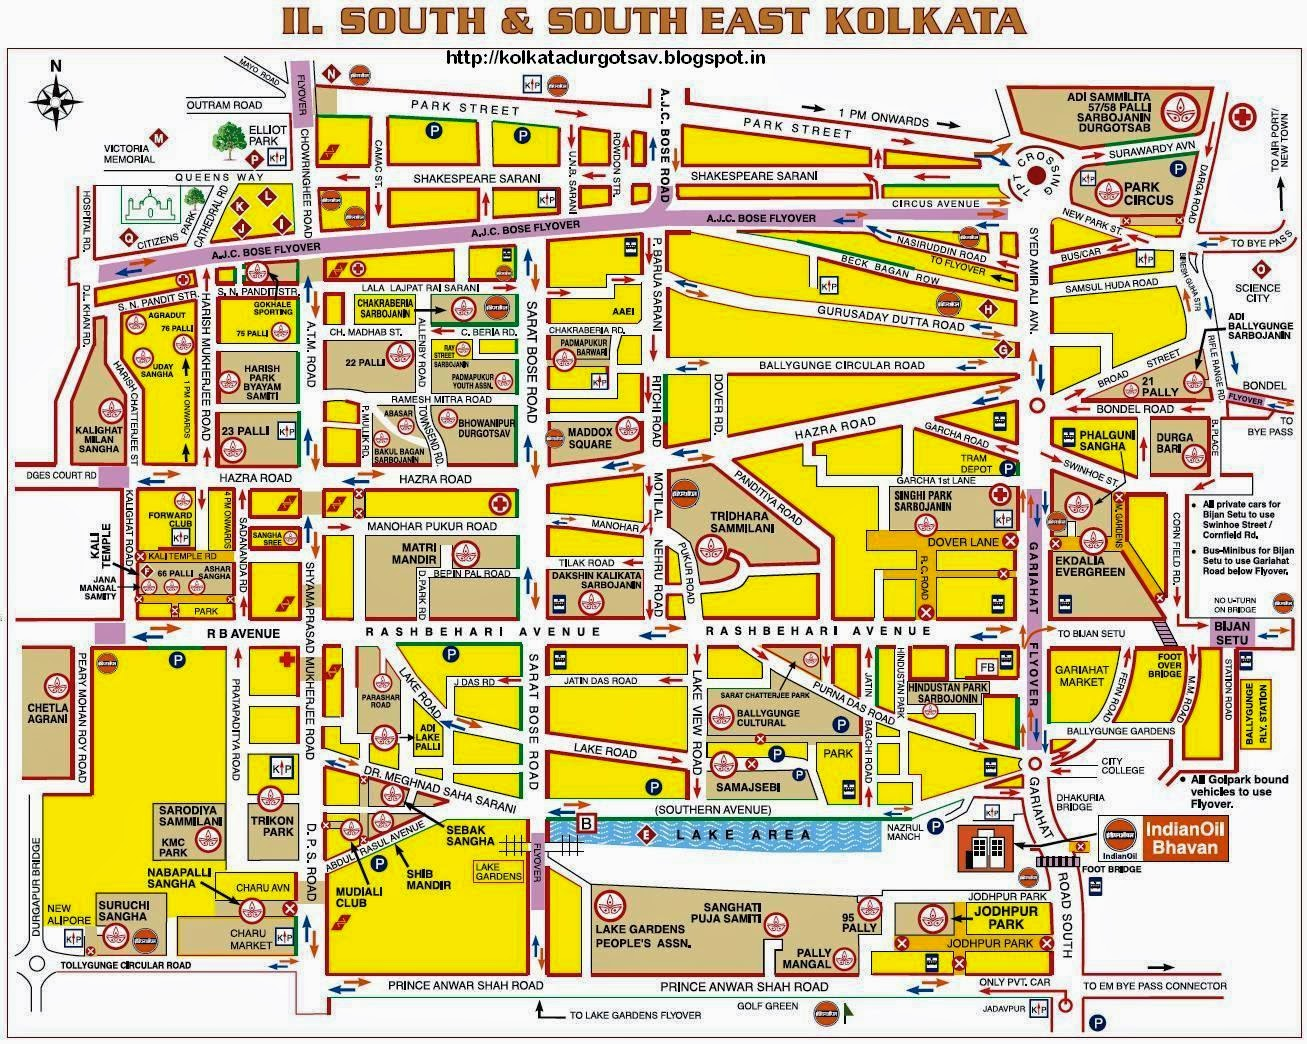 South and South East Kolkata Map